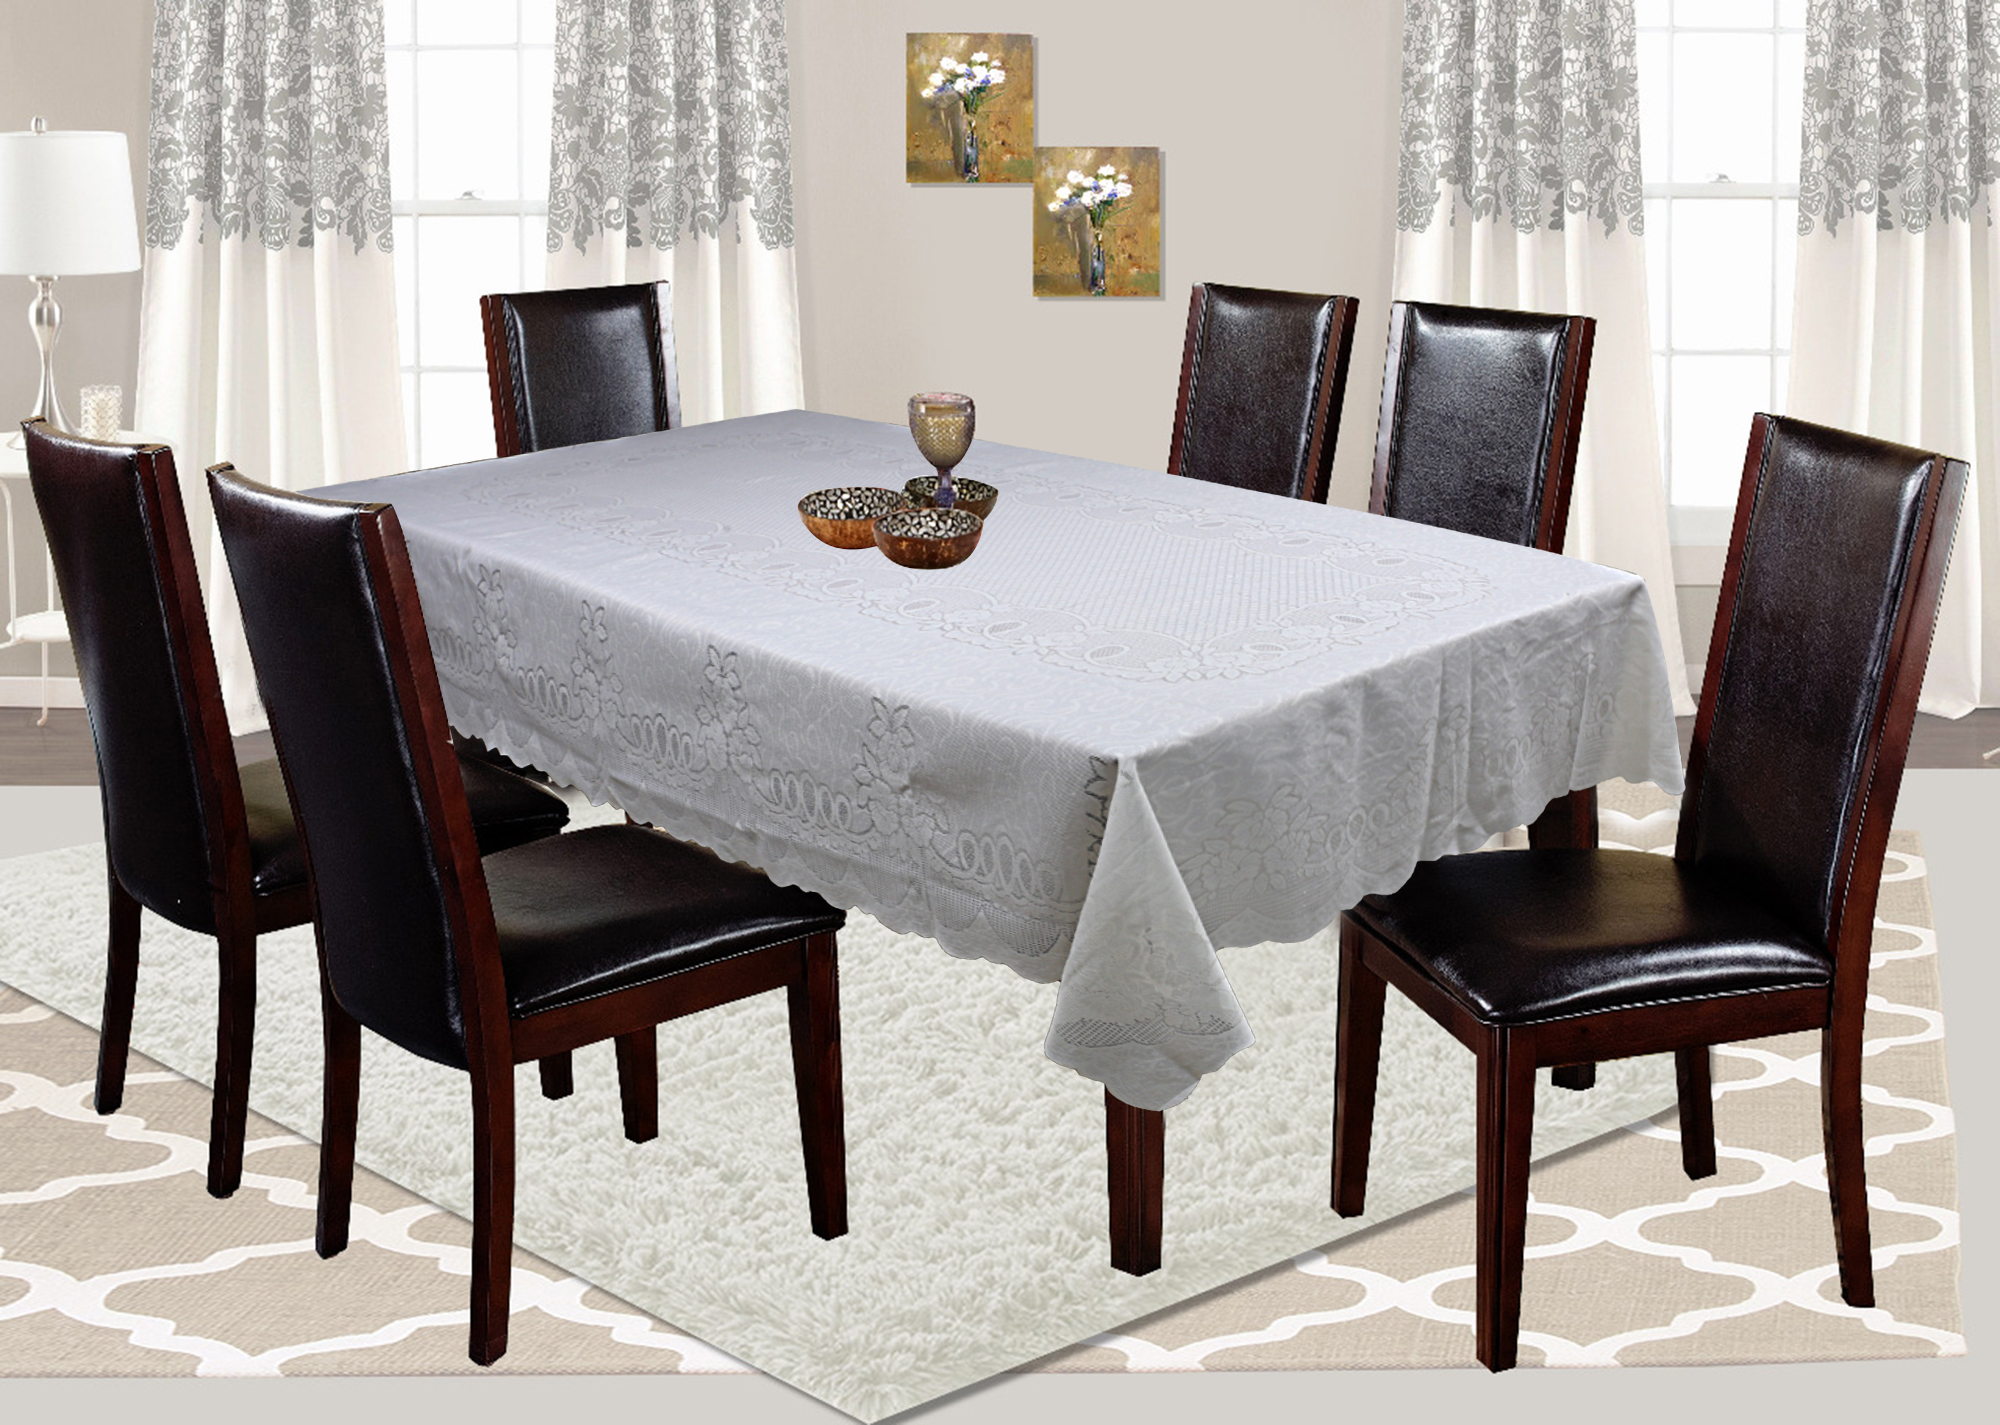 "Kuber Industries Floral Design Cotton 6 Seater Dining Table Cover 60""x90"" (Cream)-CTKTC32579"